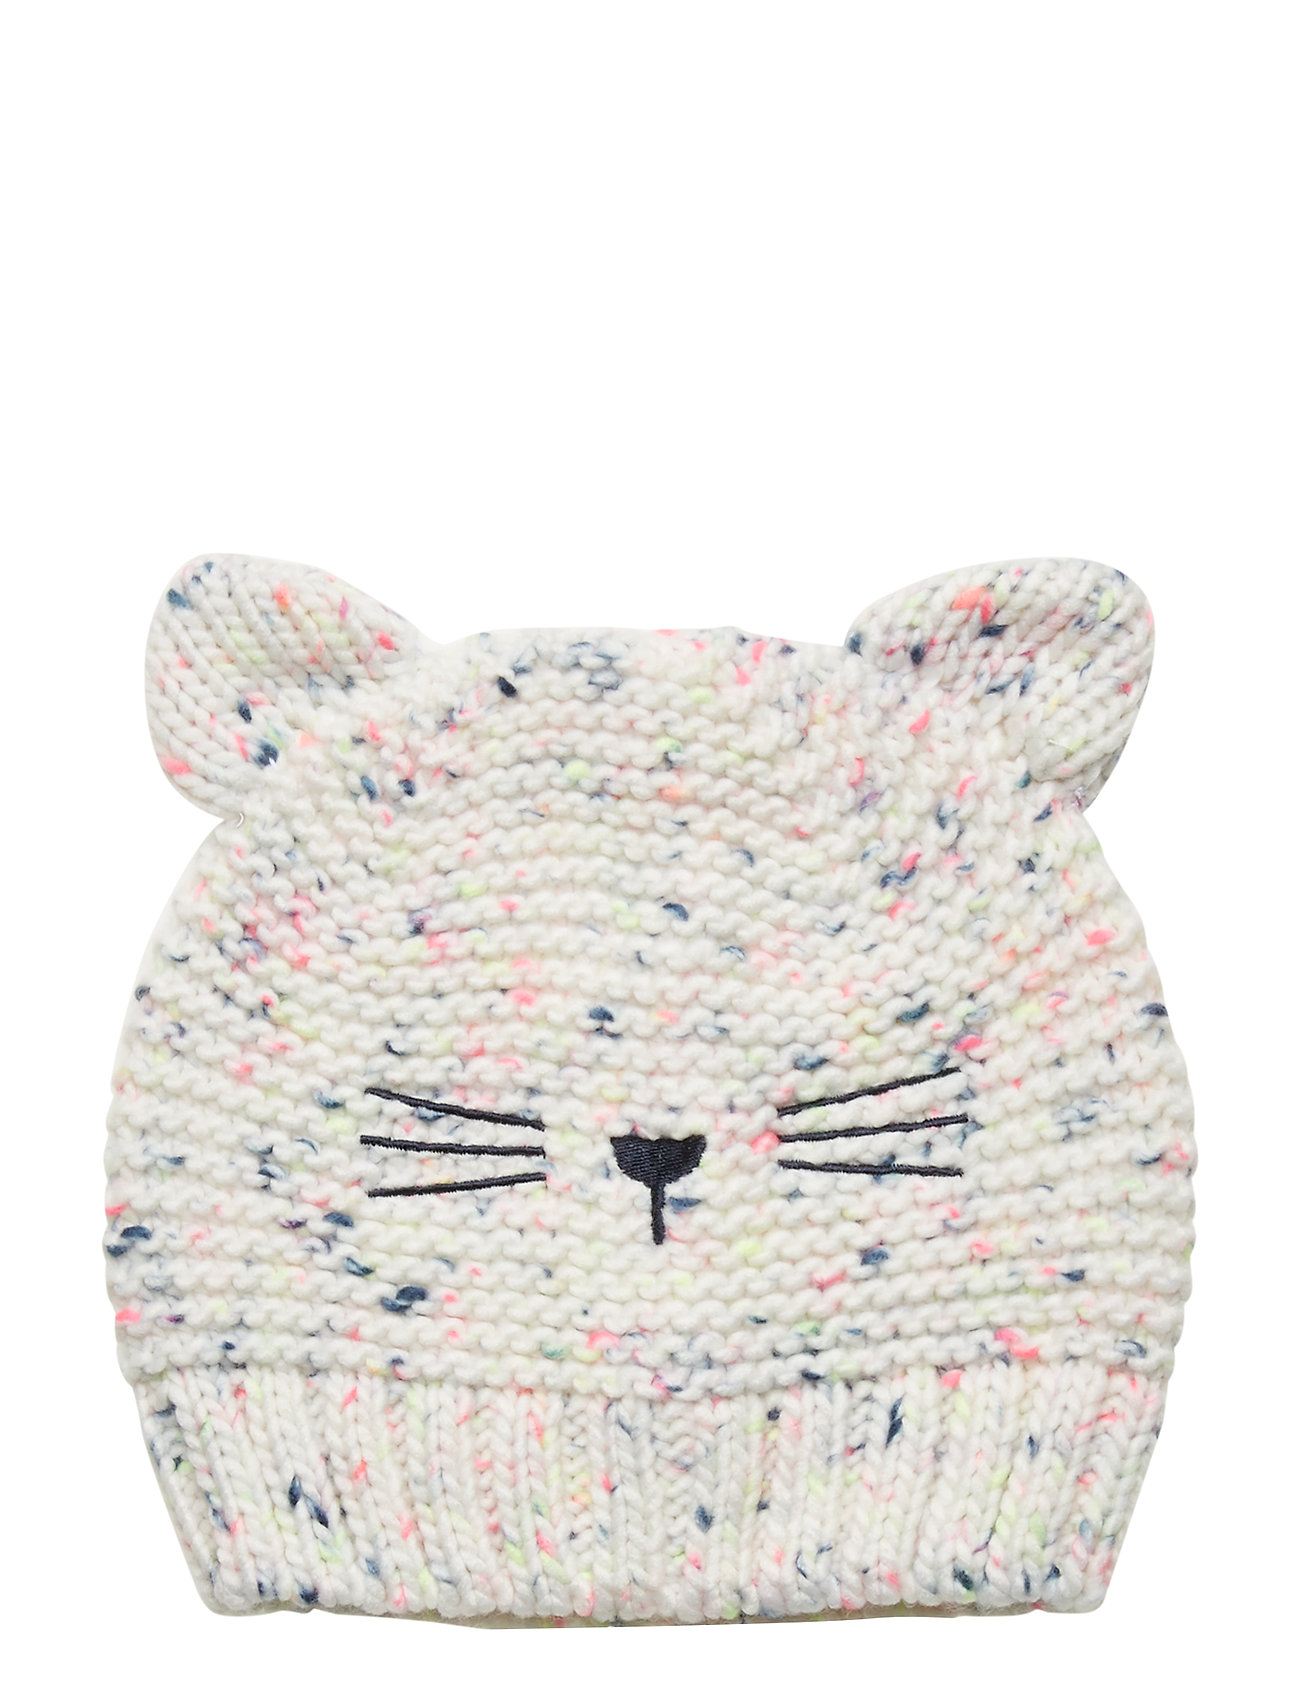 GAP G CAT SWTR HAT - MULTI